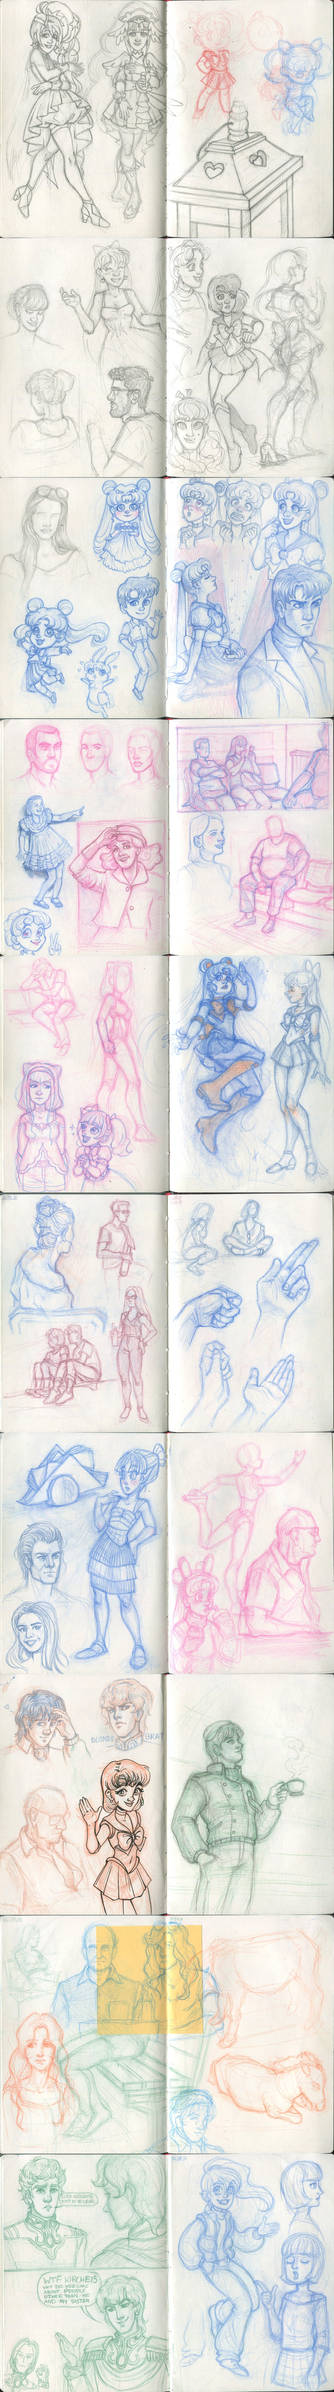 My sketchbook 46